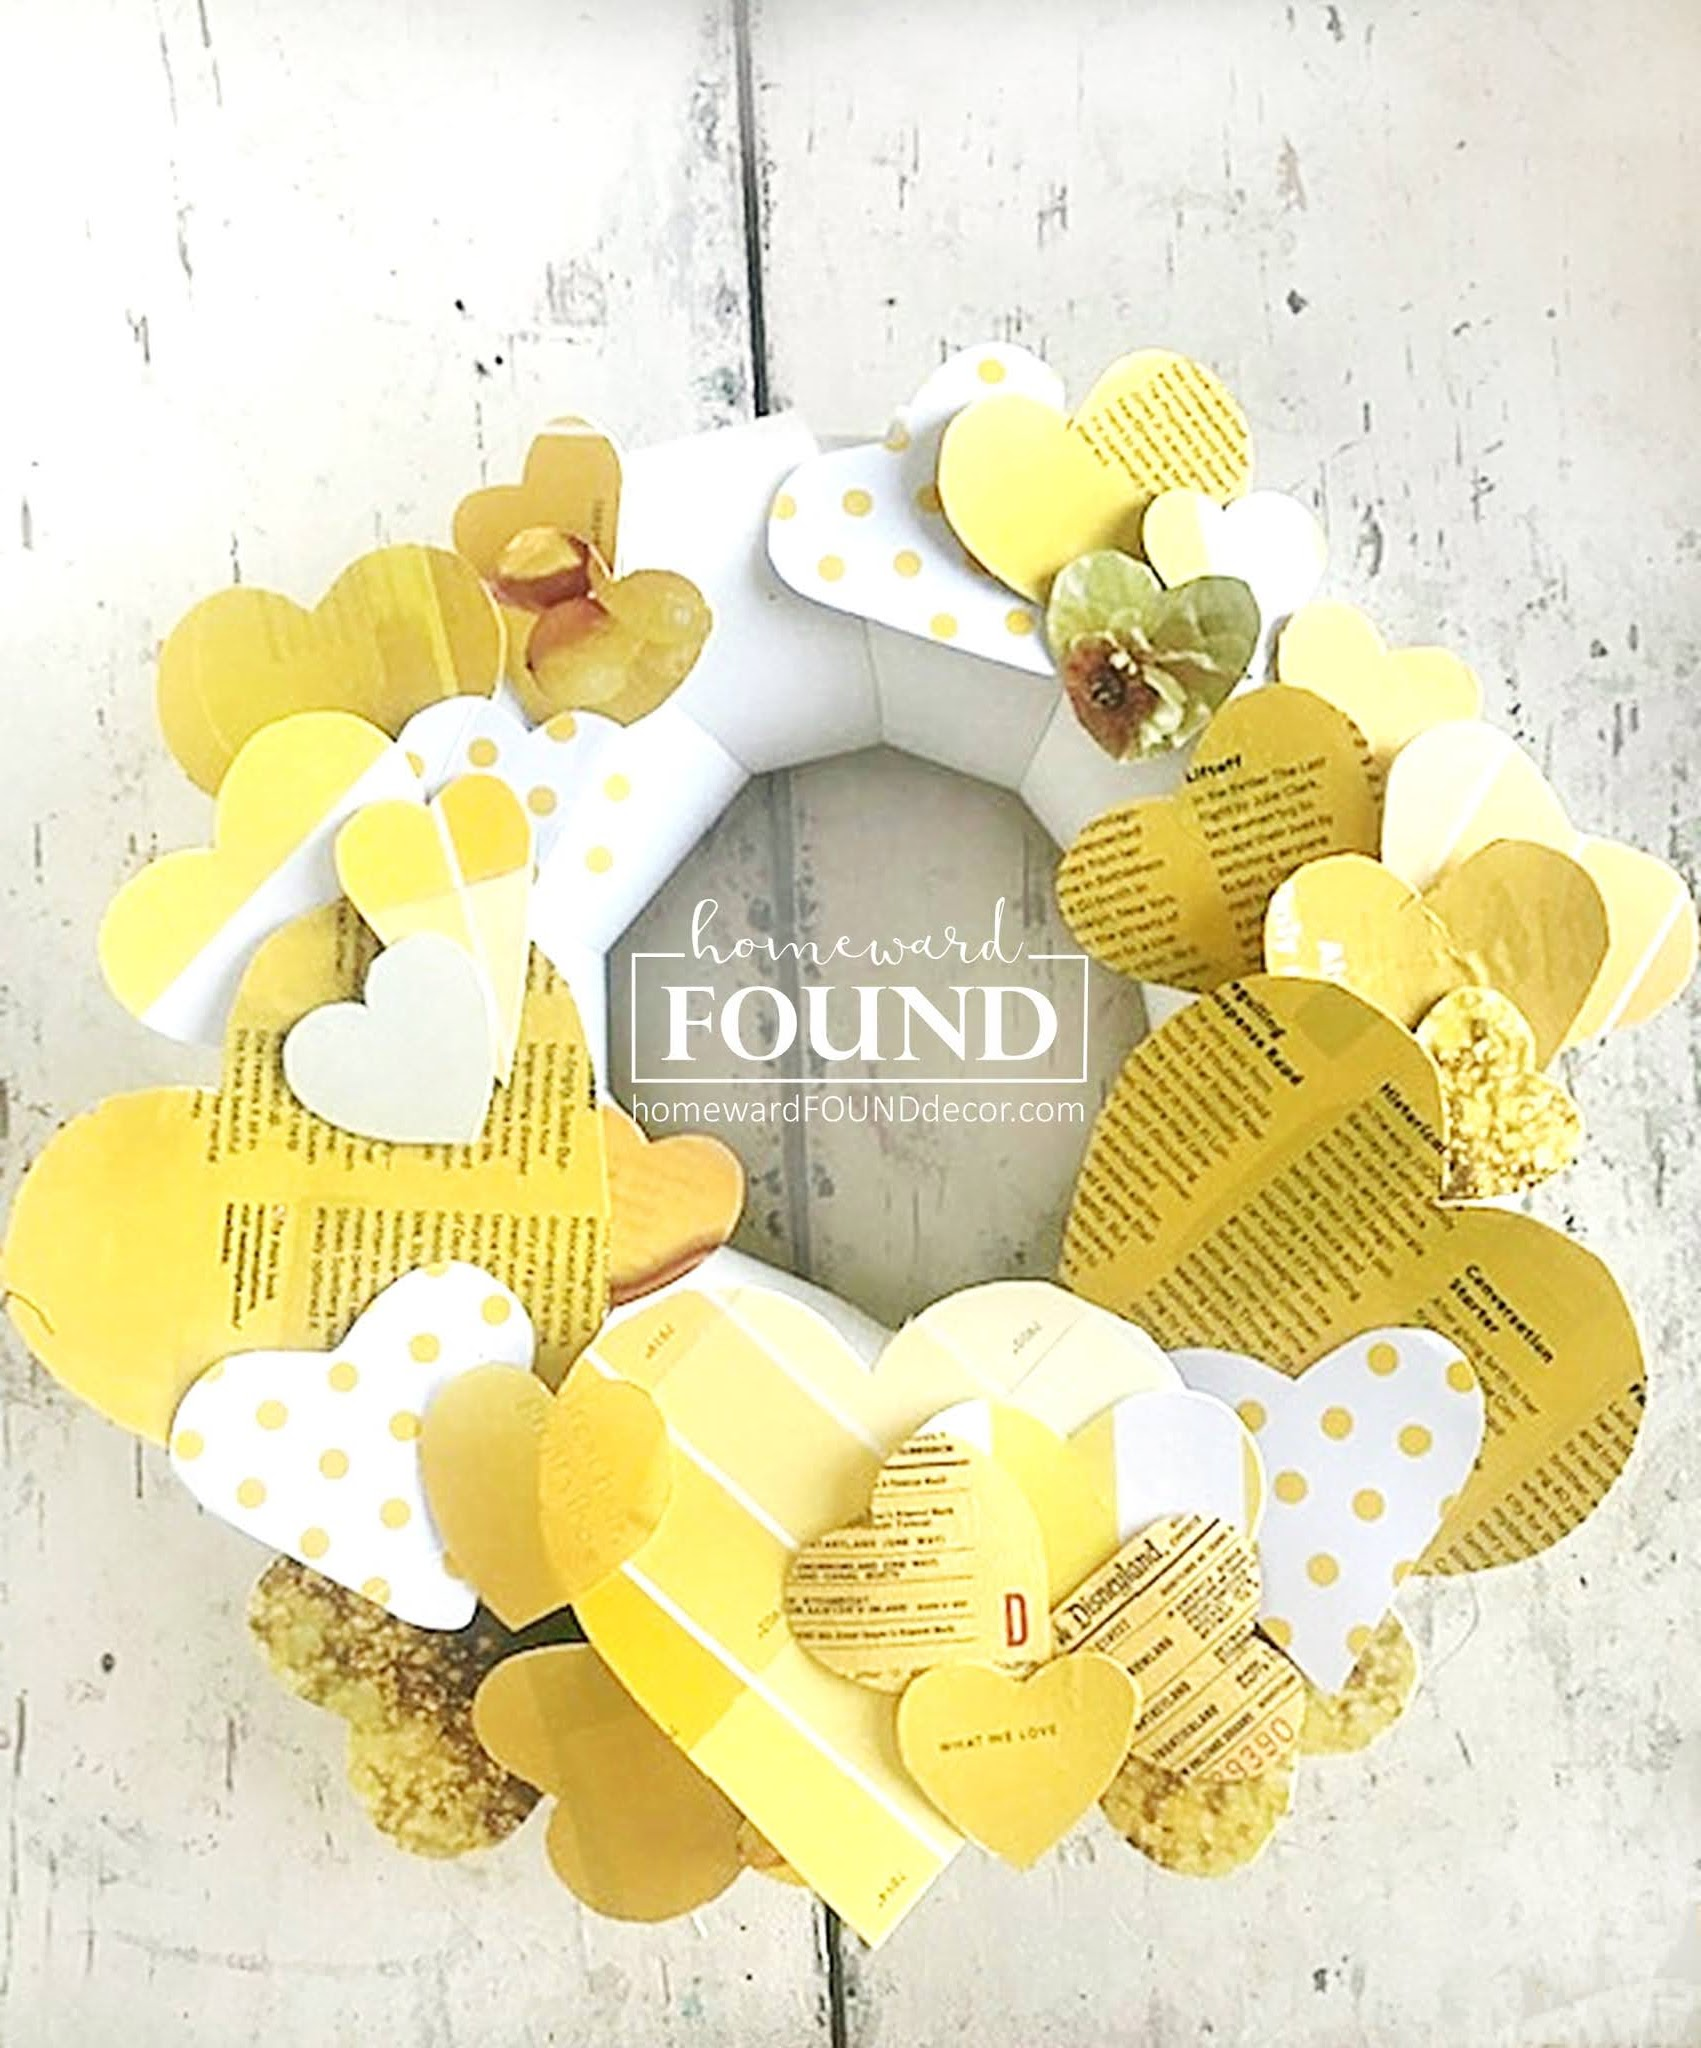 Scrap paper heart wreath by Homeward Found, featured on DIY Salvaged Junk Projects 562 on Funky Junk!